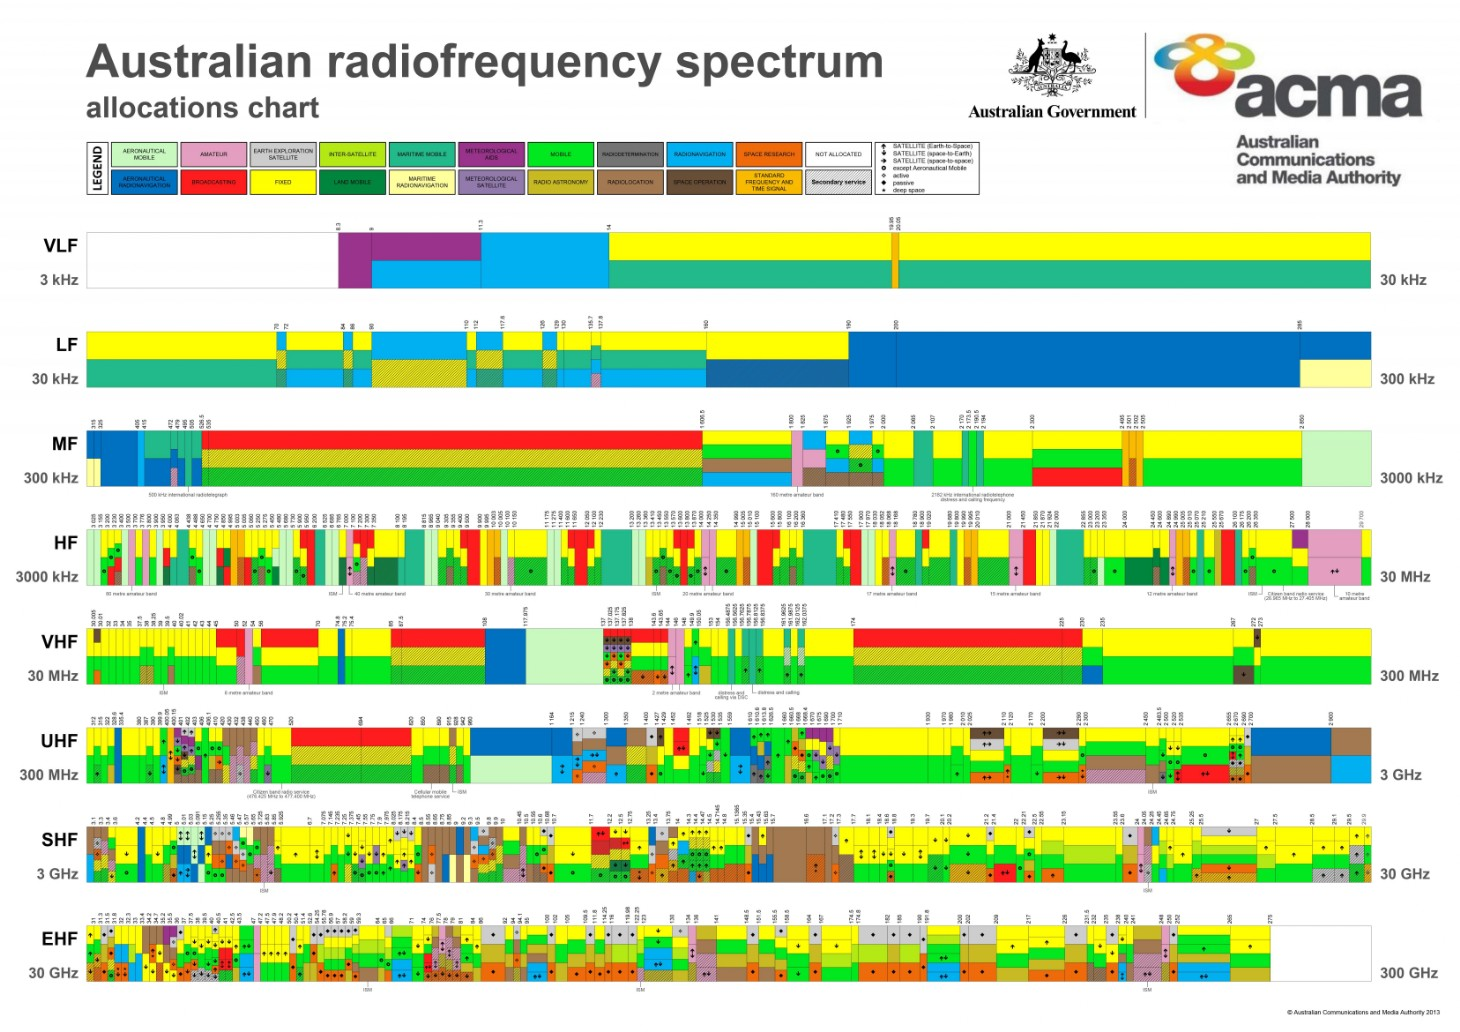 Radio frequency spectrum allocation chart